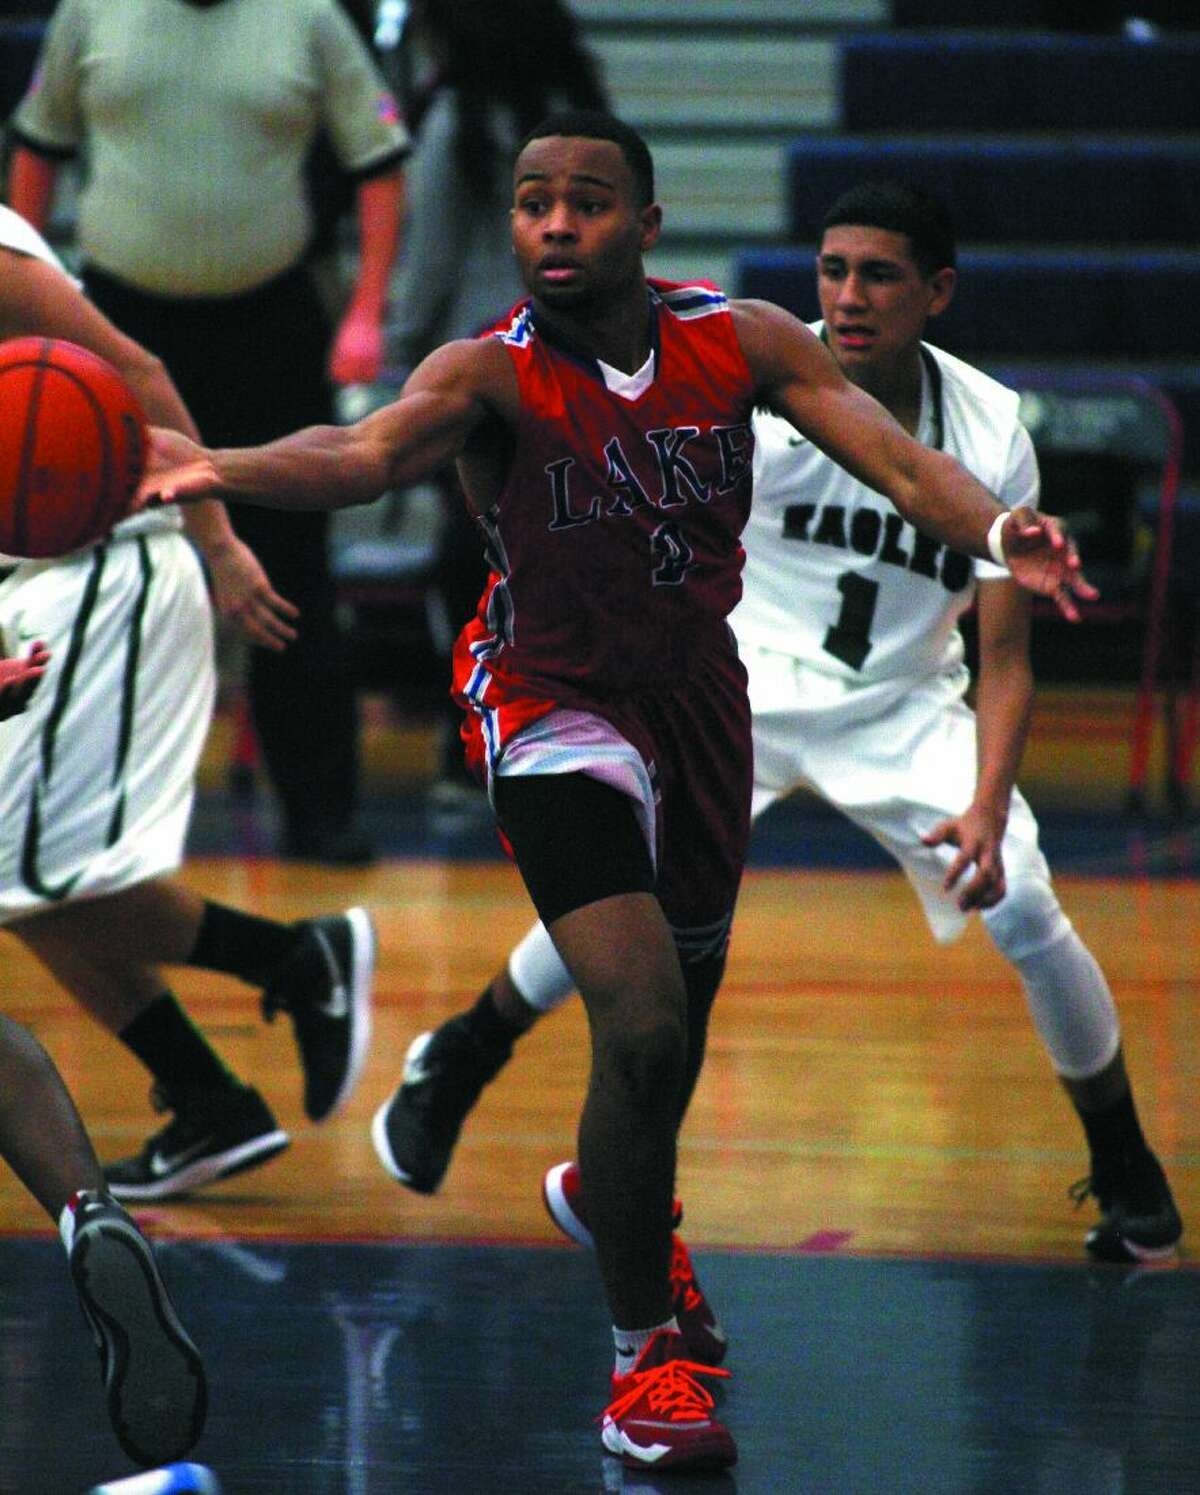 Orion Lewis of Clear Lake passes the ball against Pasadena last week in the Carlisle-Krueger Classic.